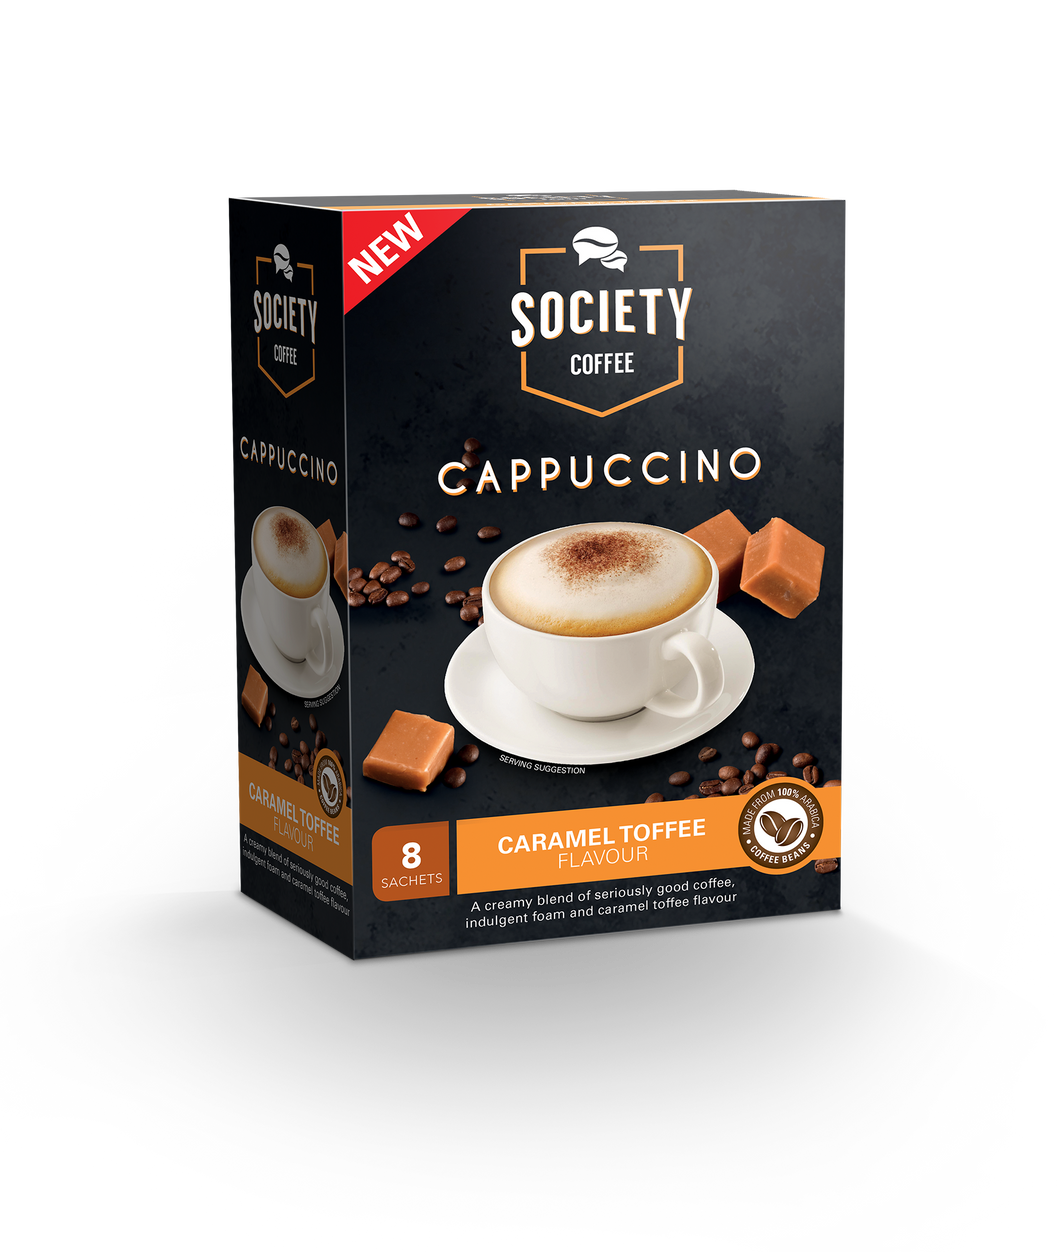 Society Cappucino - Caramel Toffee - Case of 10 Packs